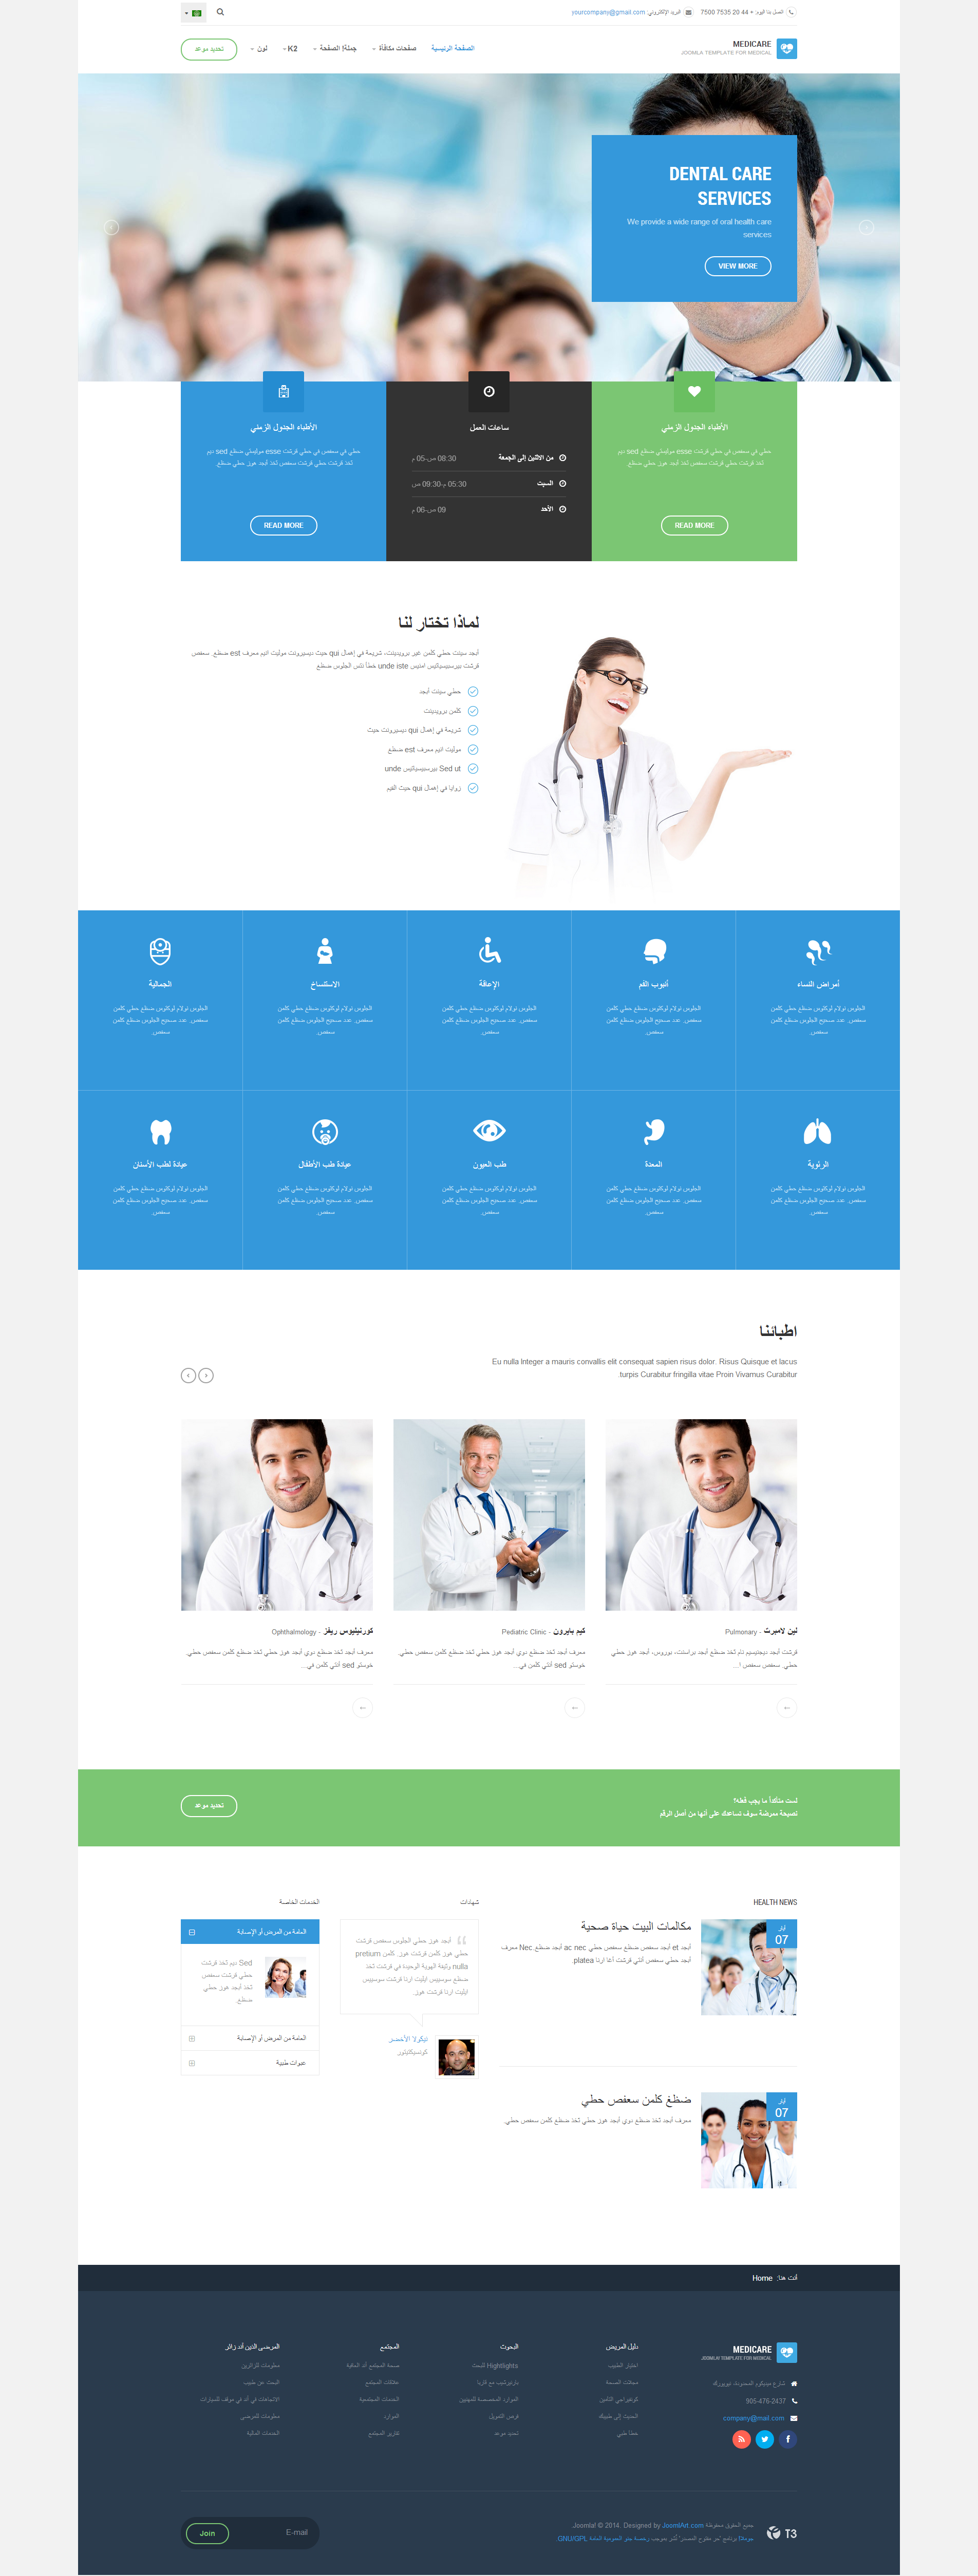 Nice 1 Button Template Small 1 Inch Hexagon Template Shaped 10 Words Not To Put On Your Resume 14 Year Old Resumes Old 16 Birthday Invitation Templates White2 Month Calendar Template Responsive Joomla Template For Hospitals, Clinics, And Health Care ..